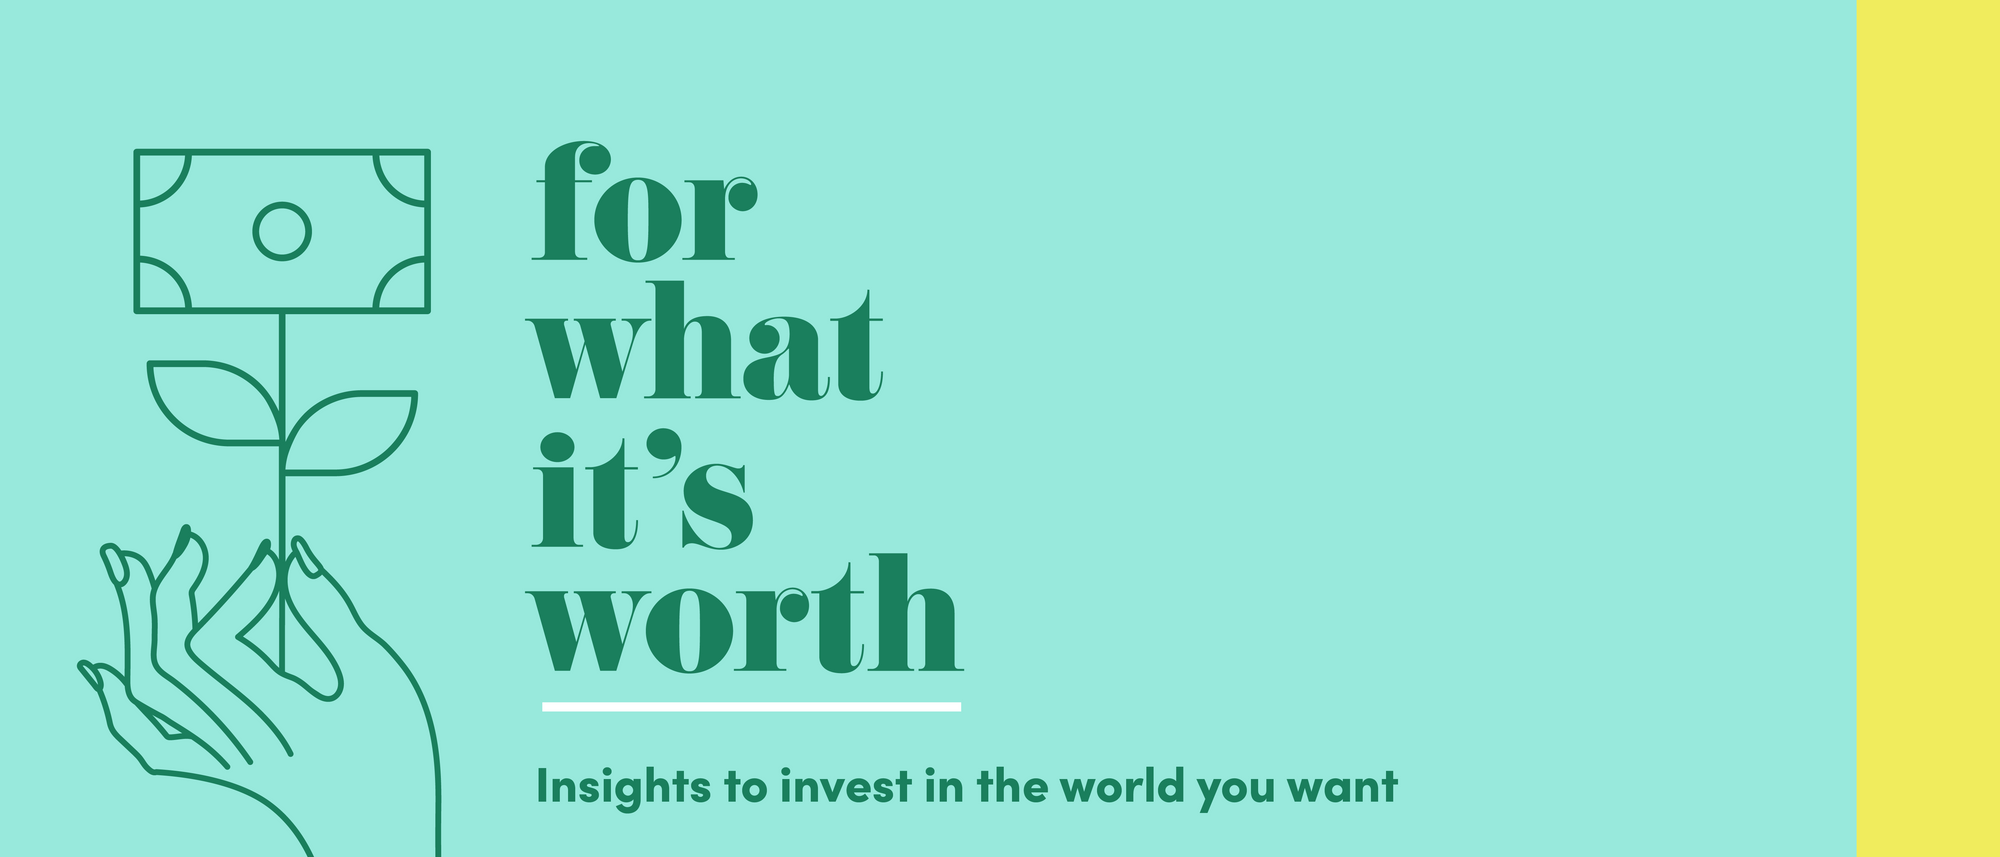 """Email header with the """"For What It's Worth"""" logo, graphic that includes a hand holding a representation of a blooming flower that has money blooming at the top, and the tagline """"Insights to invest in the world you want"""" underneath it."""